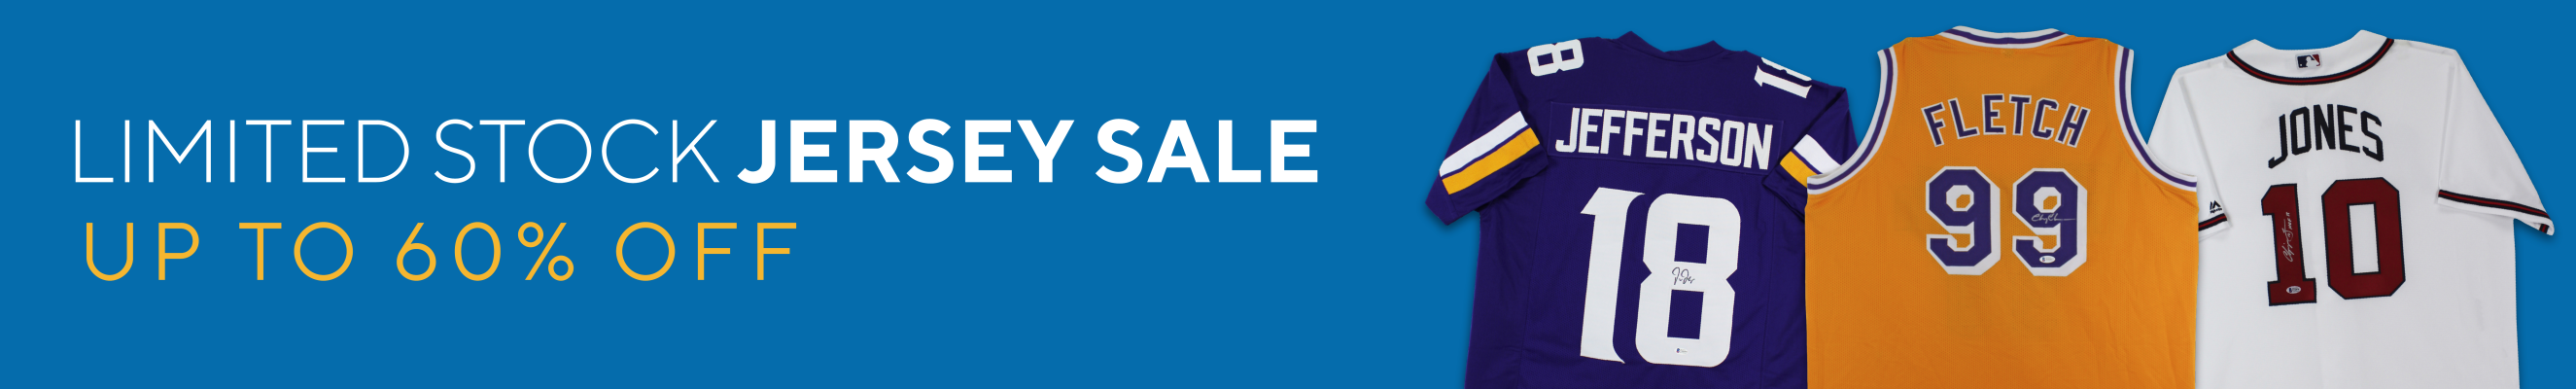 jersey-sale-page-header.png